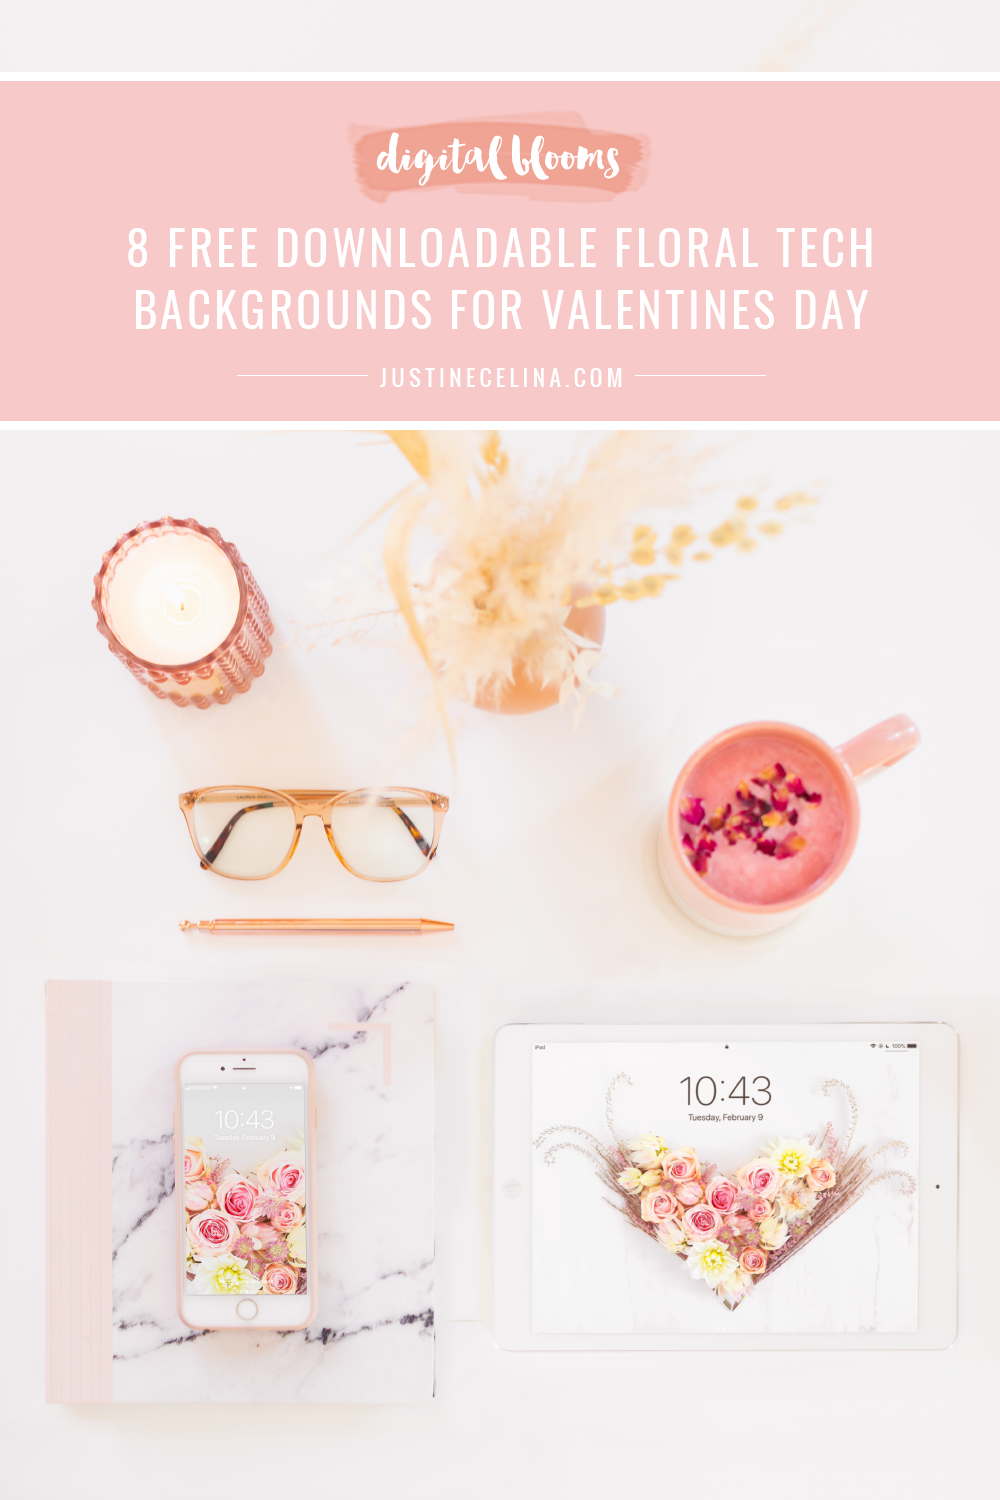 Free Valentine's Day Flower Wallpapers | 8 Free Downloadable Floral Tech Backgrounds for February | Feminine WFH set up with an iPad and iPhone featuring JustineCelina's floral heart wallpaper, a blush pink marble journal and planner, a pampas grass arrangement and rose petal latte blue light glasses on a white desk | Female Entrepreneur Digital Wallpapers | The Best of Justine Celina's February Digital Blooms | Best Valentine's Day Computer Backgrounds | Valentine's Day Desktop Wallpaper | Valentines Day Wallpaper iPhone | Calgary Creative Lifestyle Blogger // JustineCelina.com